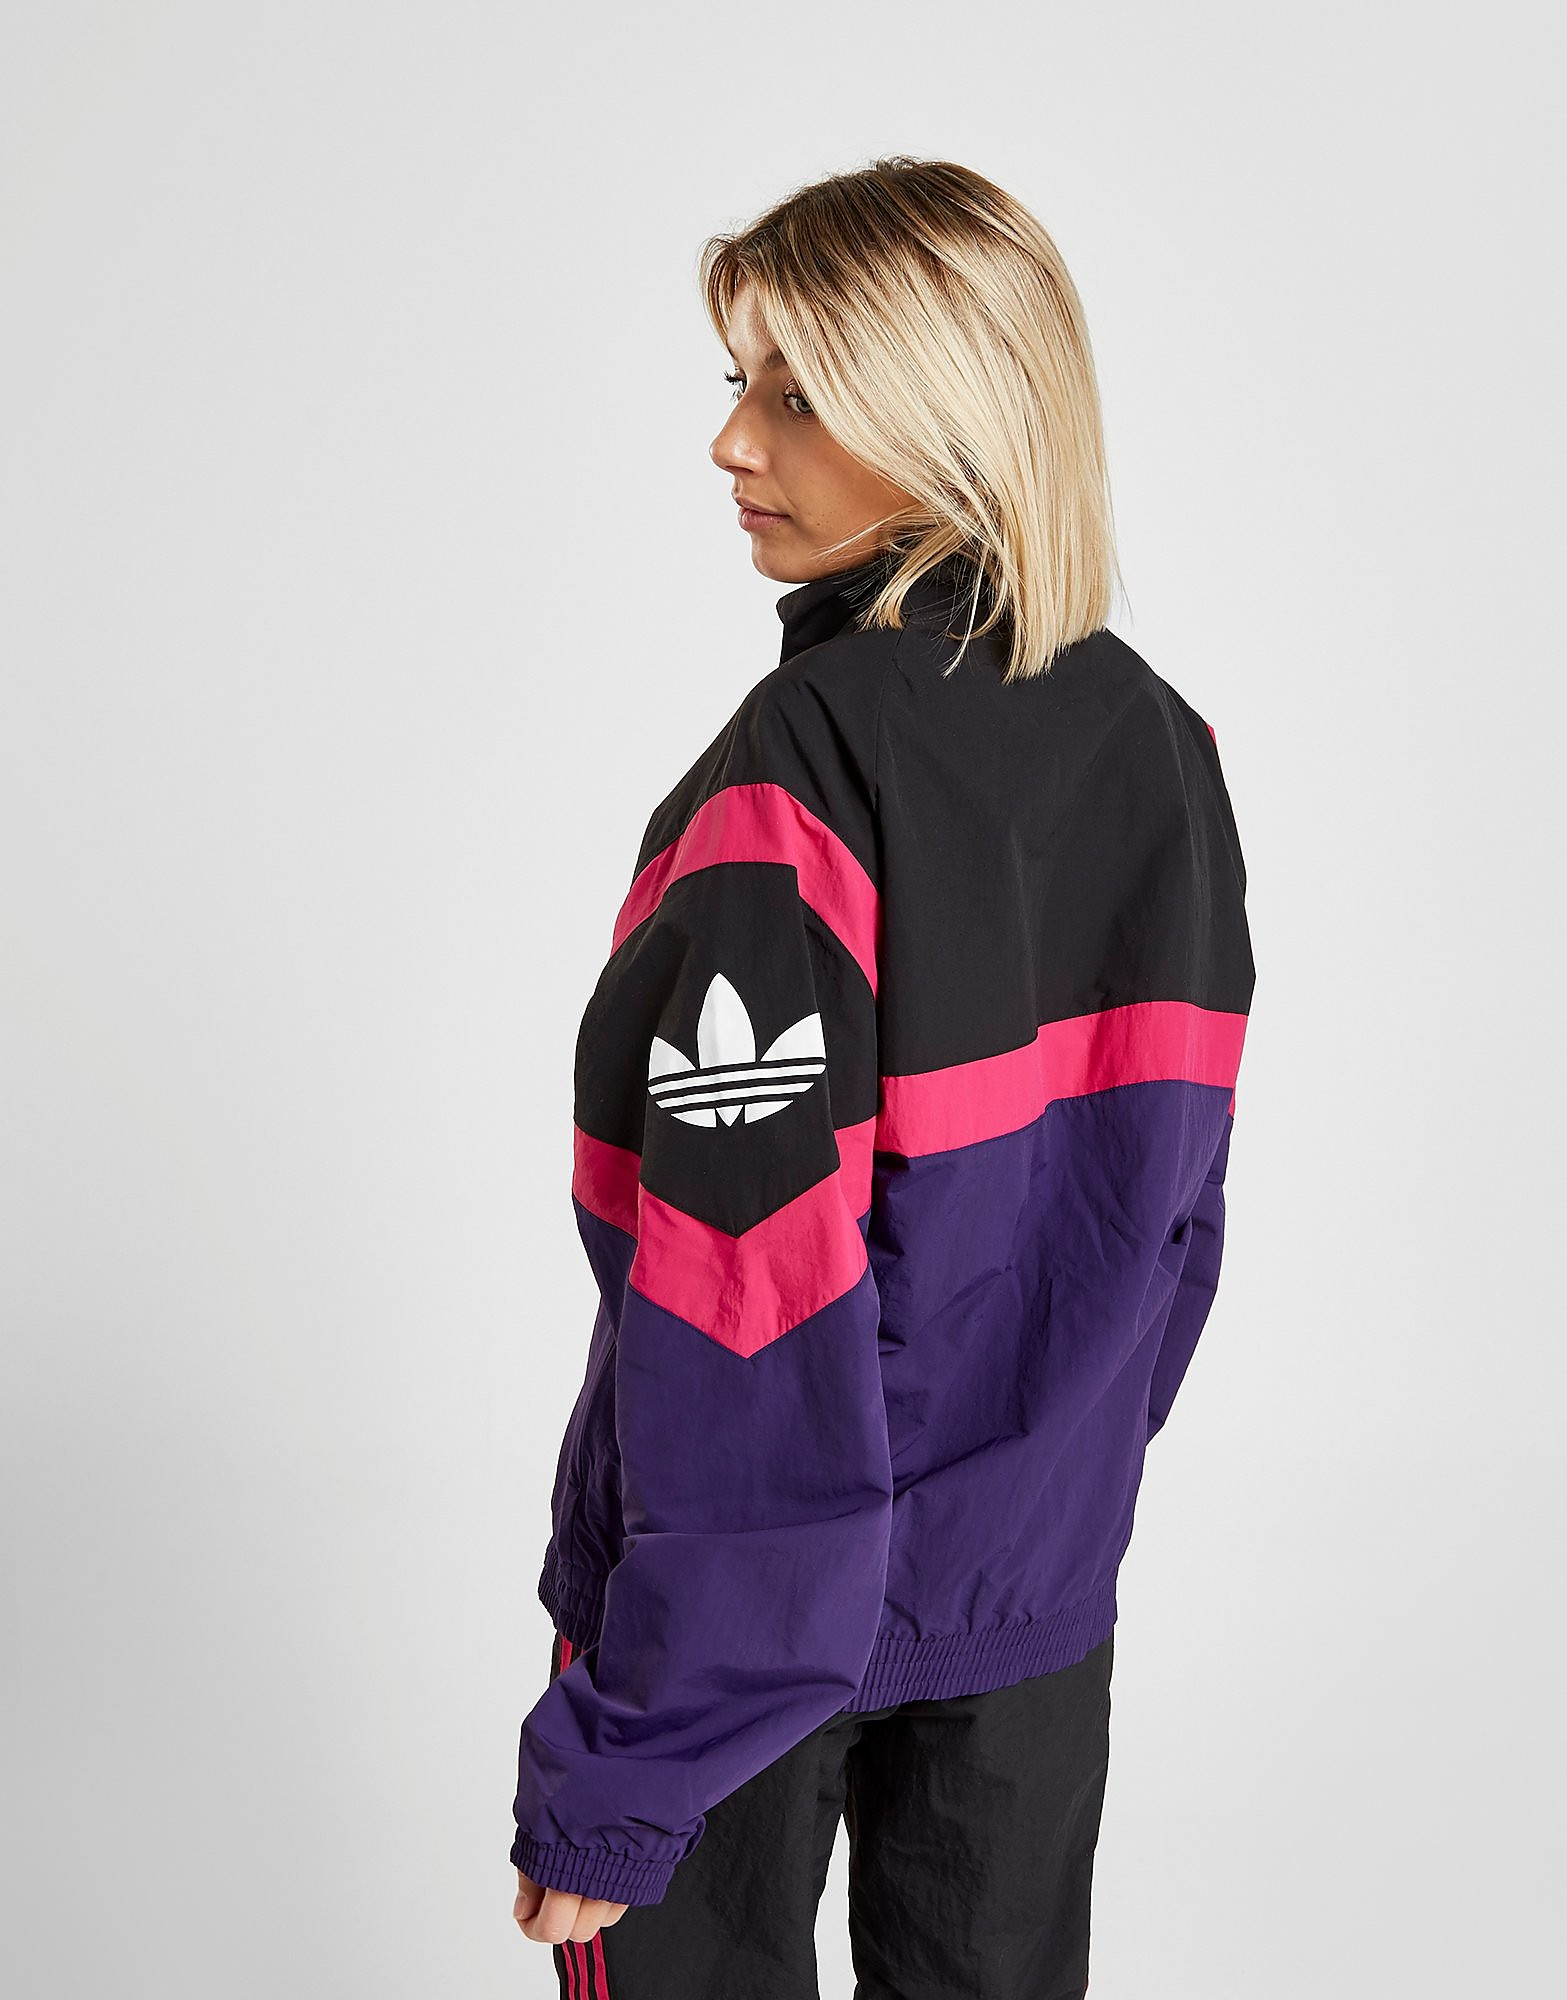 Women S Adidas Originals Trainers Clothing Accessories Jd Sports